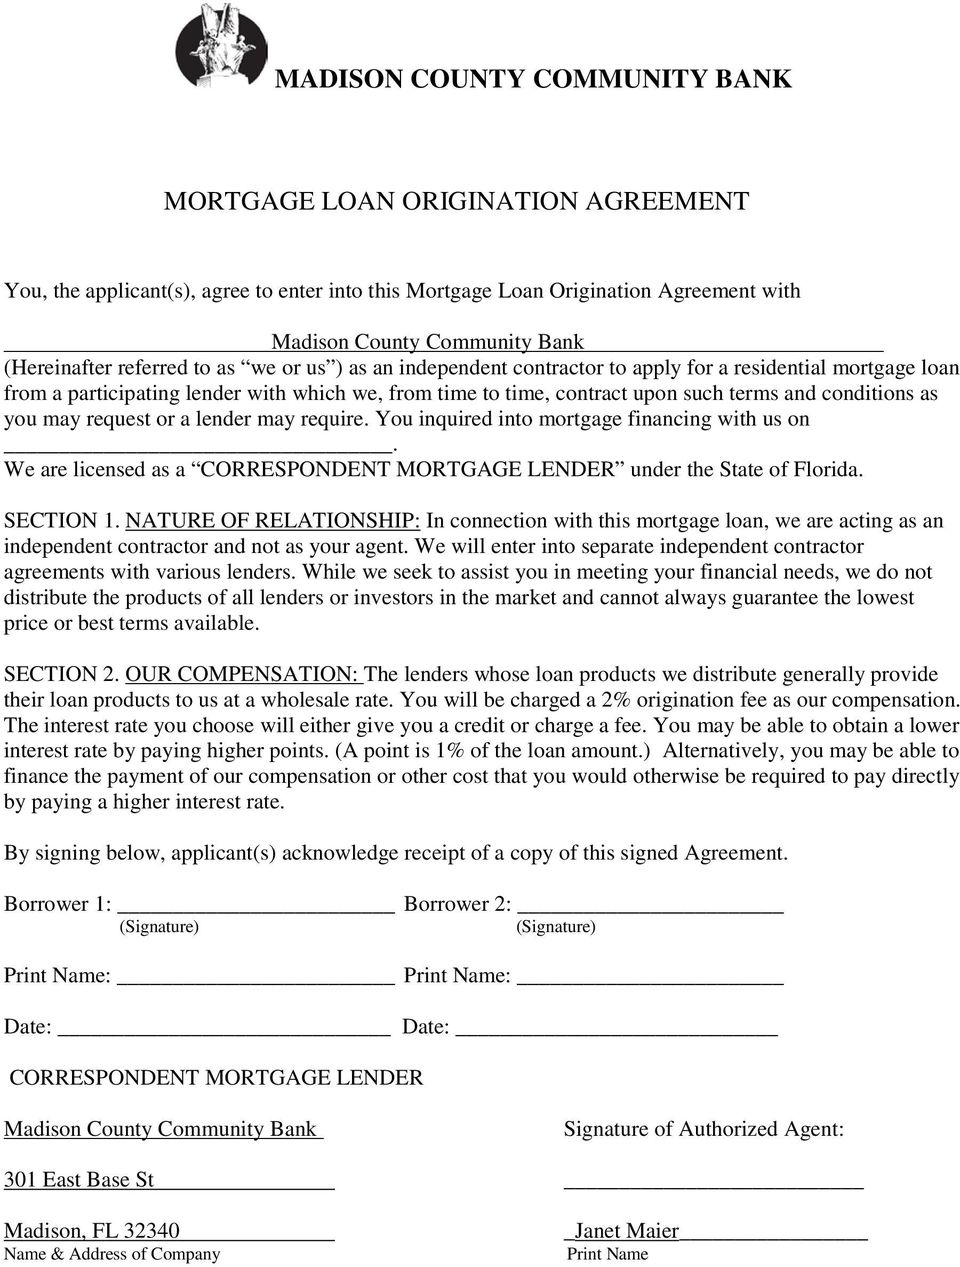 as you may request or a lender may require. You inquired into mortgage financing with us on. We are licensed as a CORRESPONDENT MORTGAGE LENDER under the State of Florida. SECTION 1.